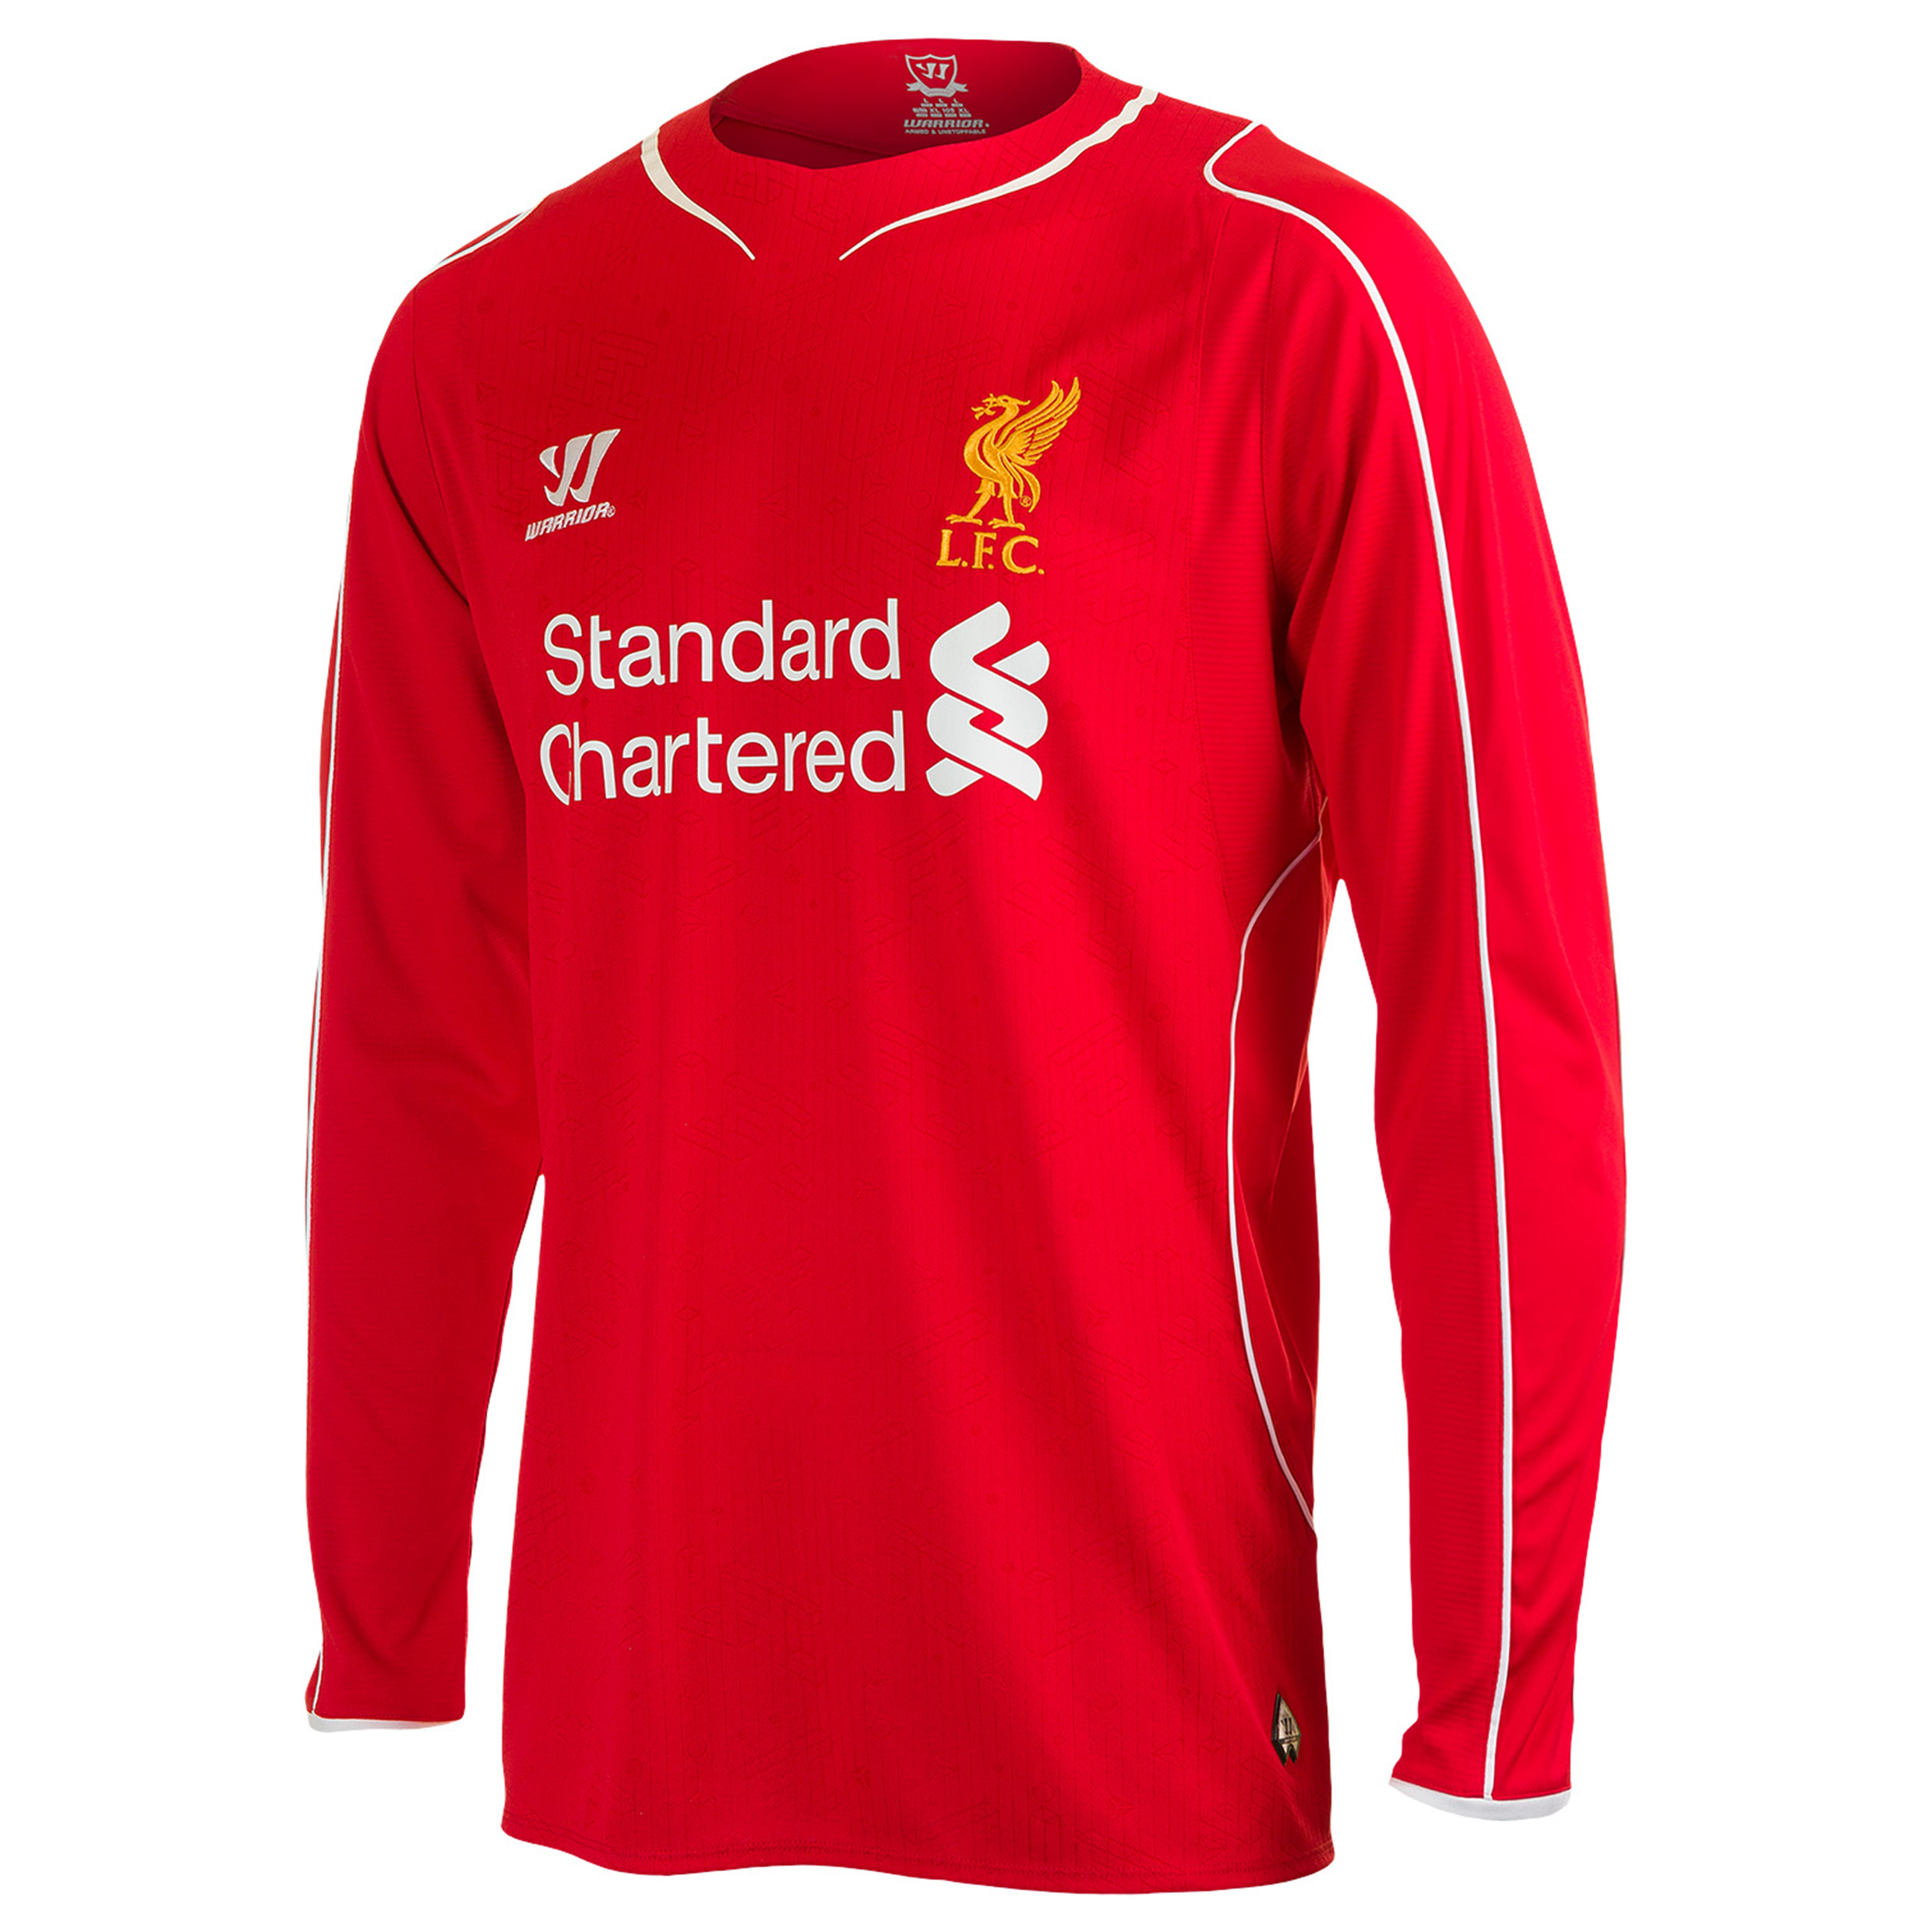 Buy Liverpool Home Kit 2014/15 Long Sleeve Red